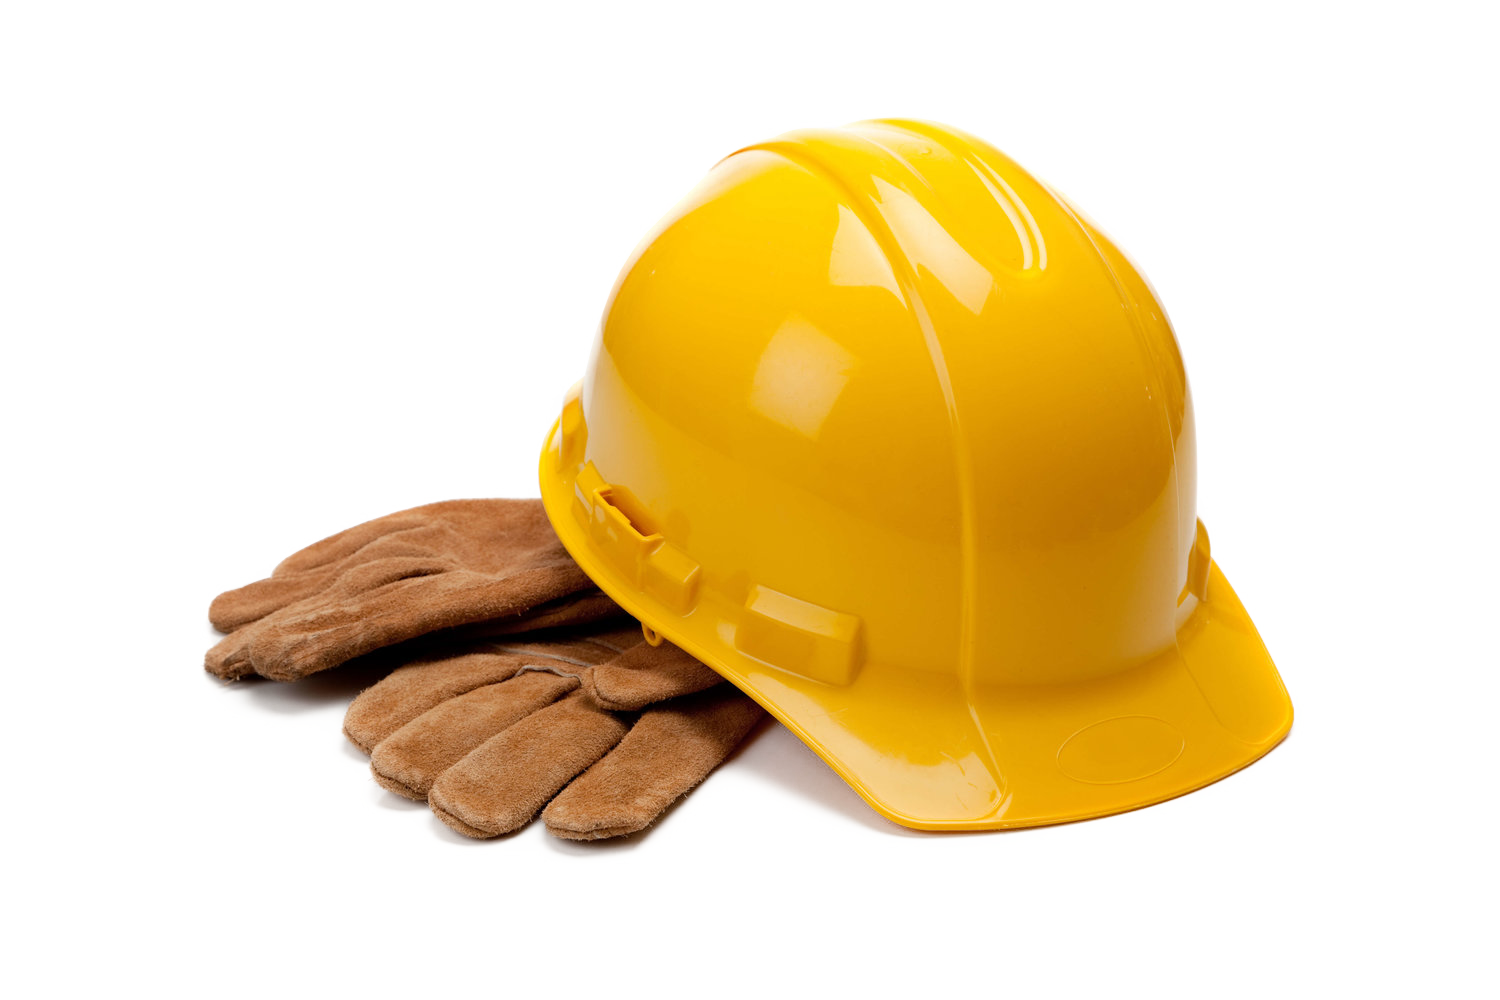 HardHat&Gloves-Minified.png